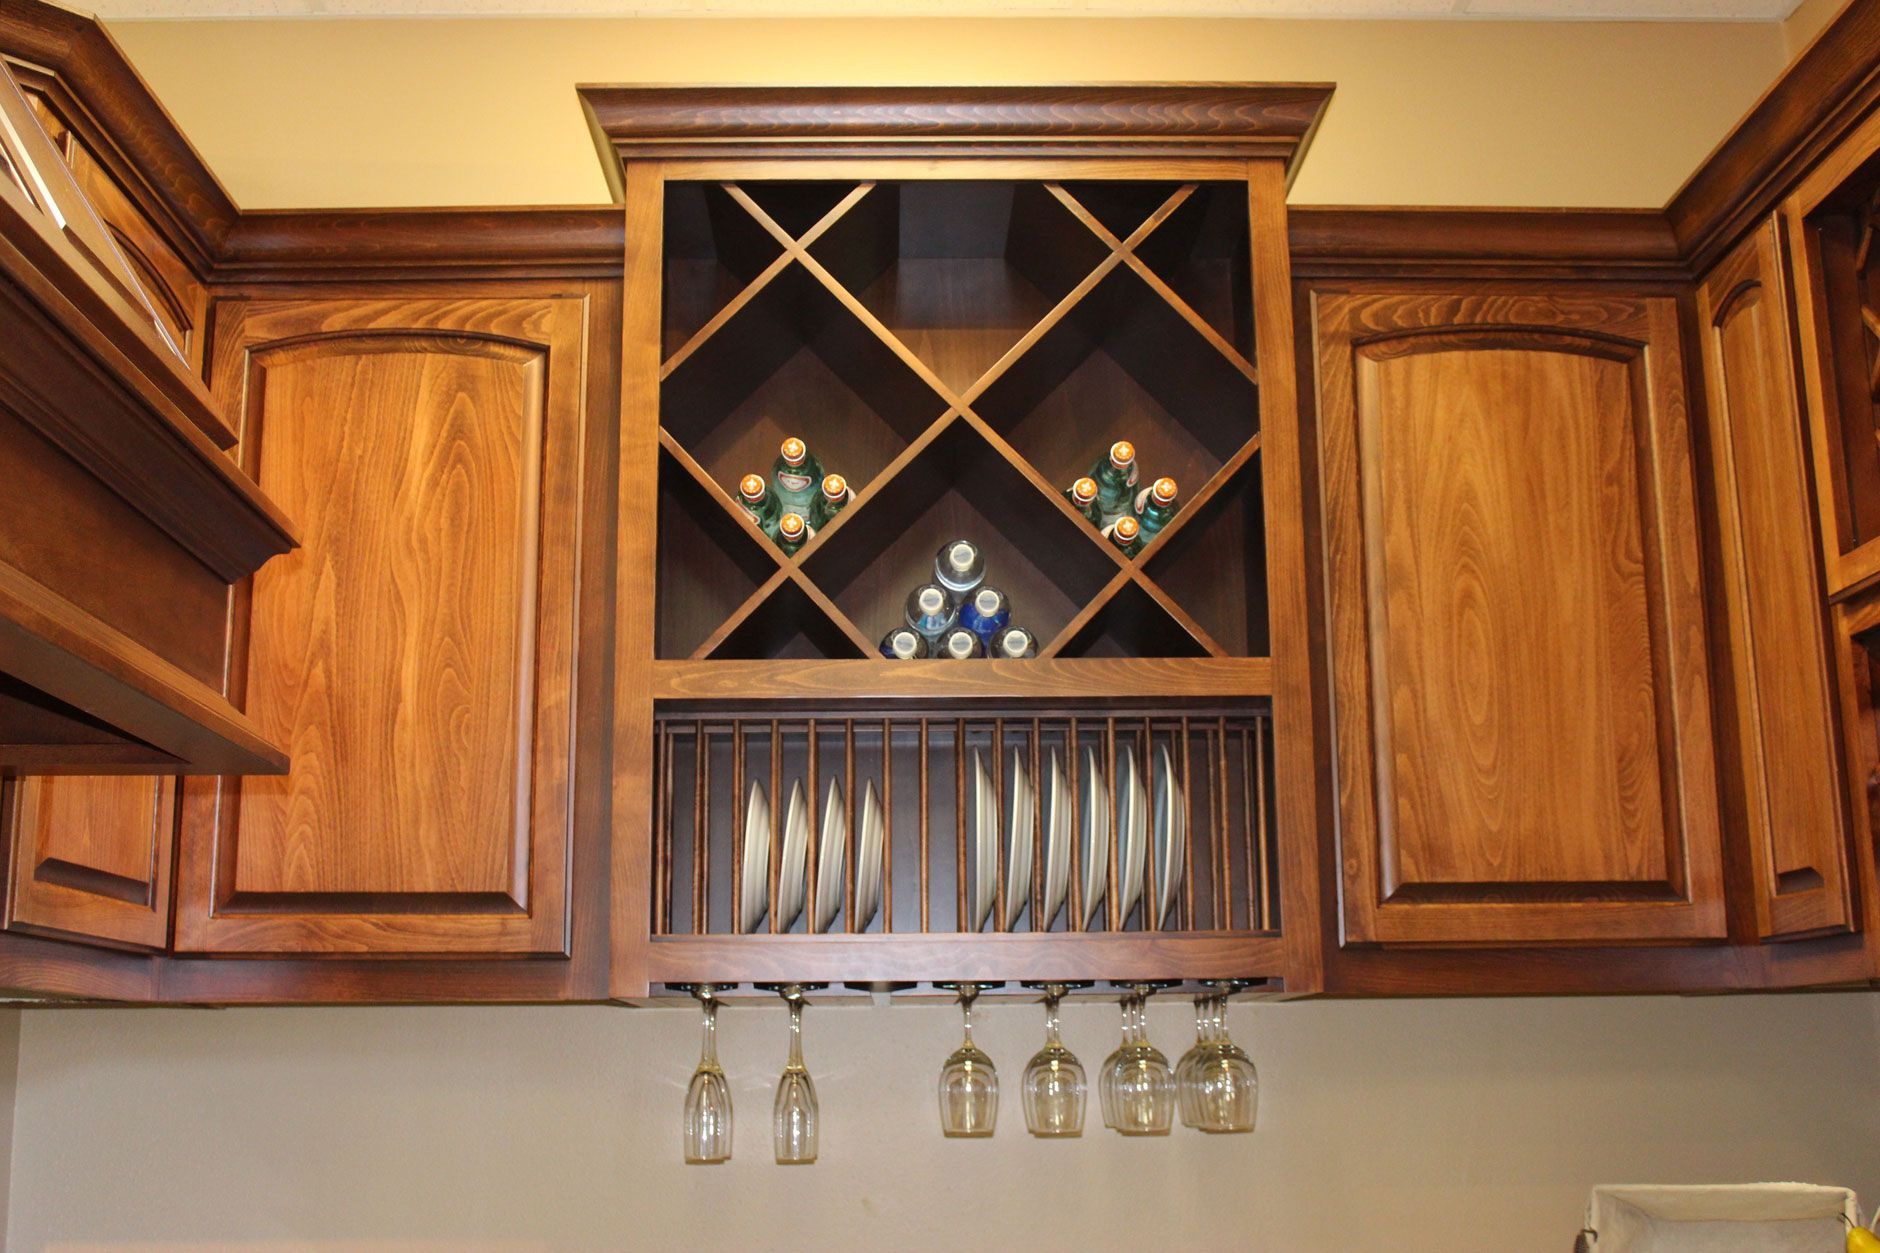 Wine Rack Big X Style Burrows Cabinets Central Texas Builder